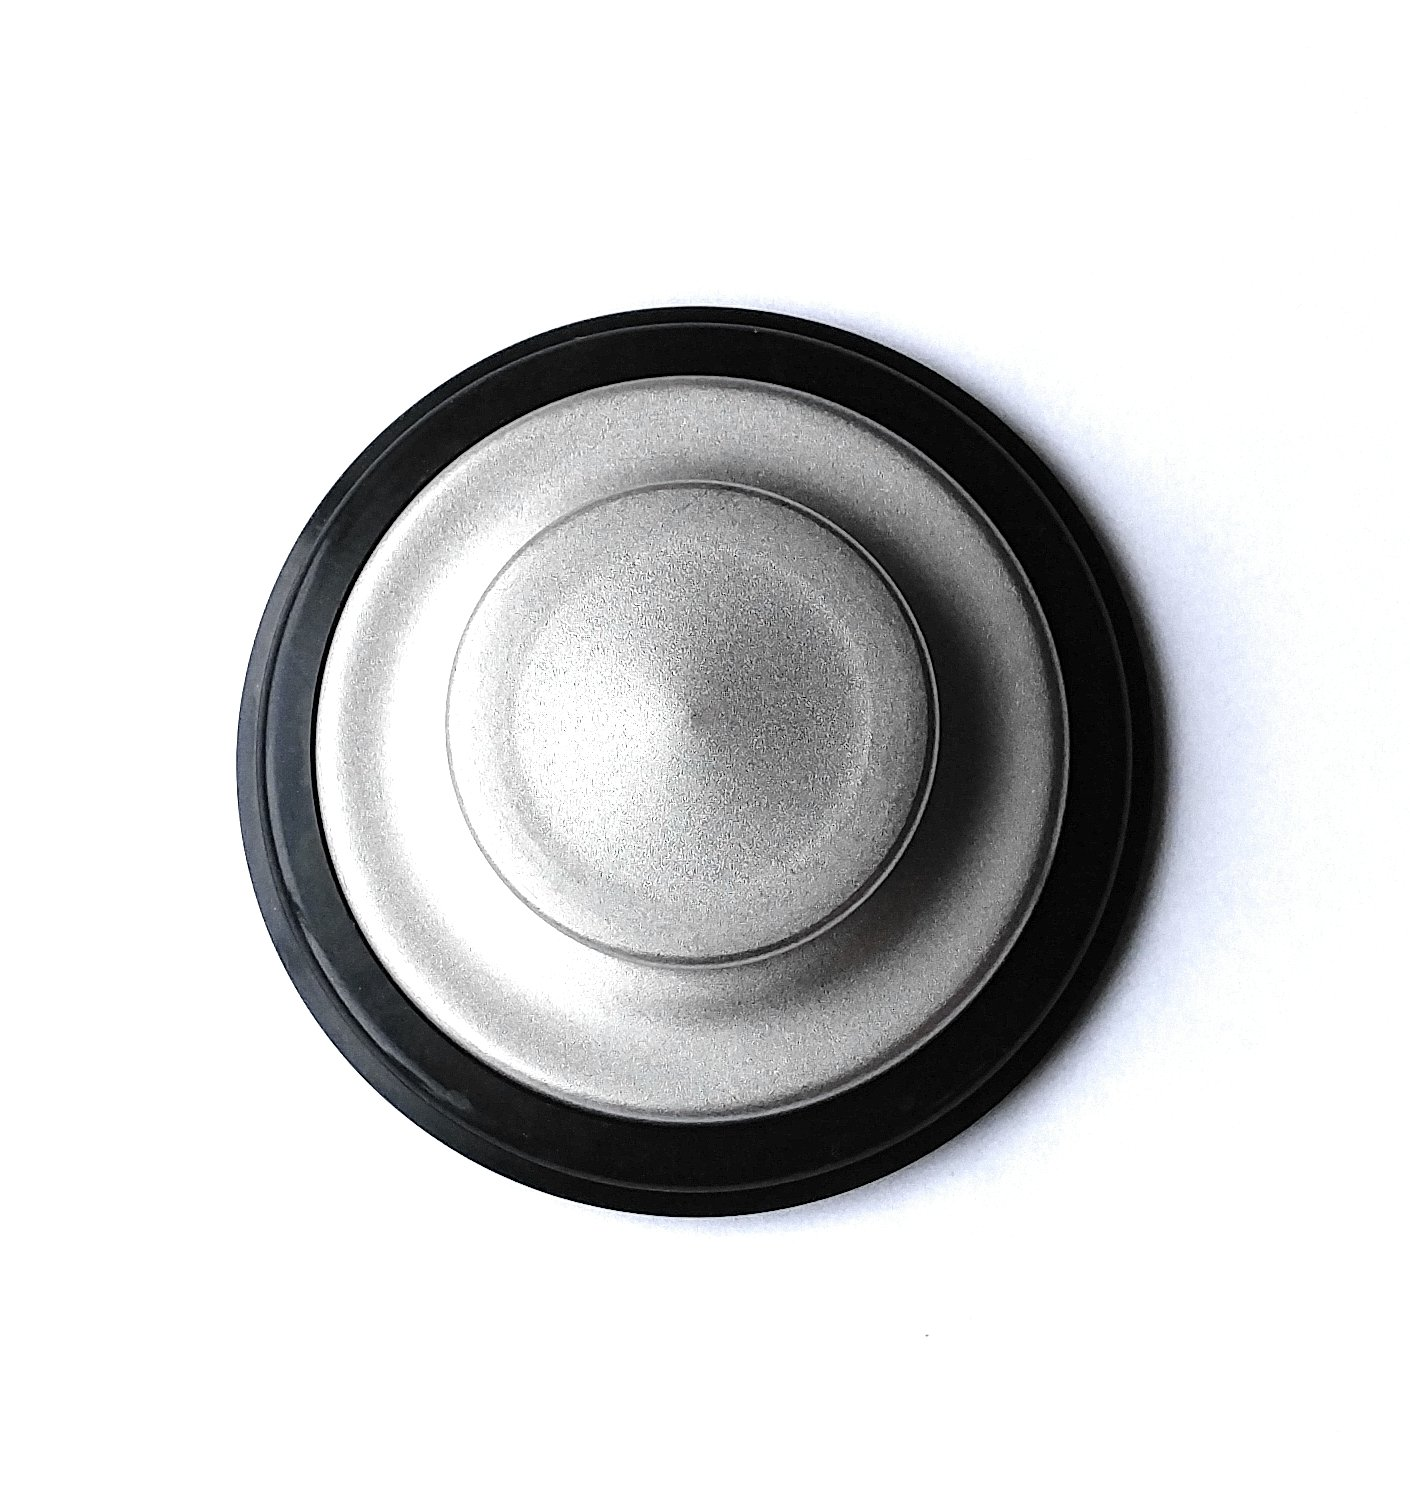 Sink stopper brushed stainless steel kitchen sink garbage disposal drain stopper fits kohler insinkerator waste king others by essential values